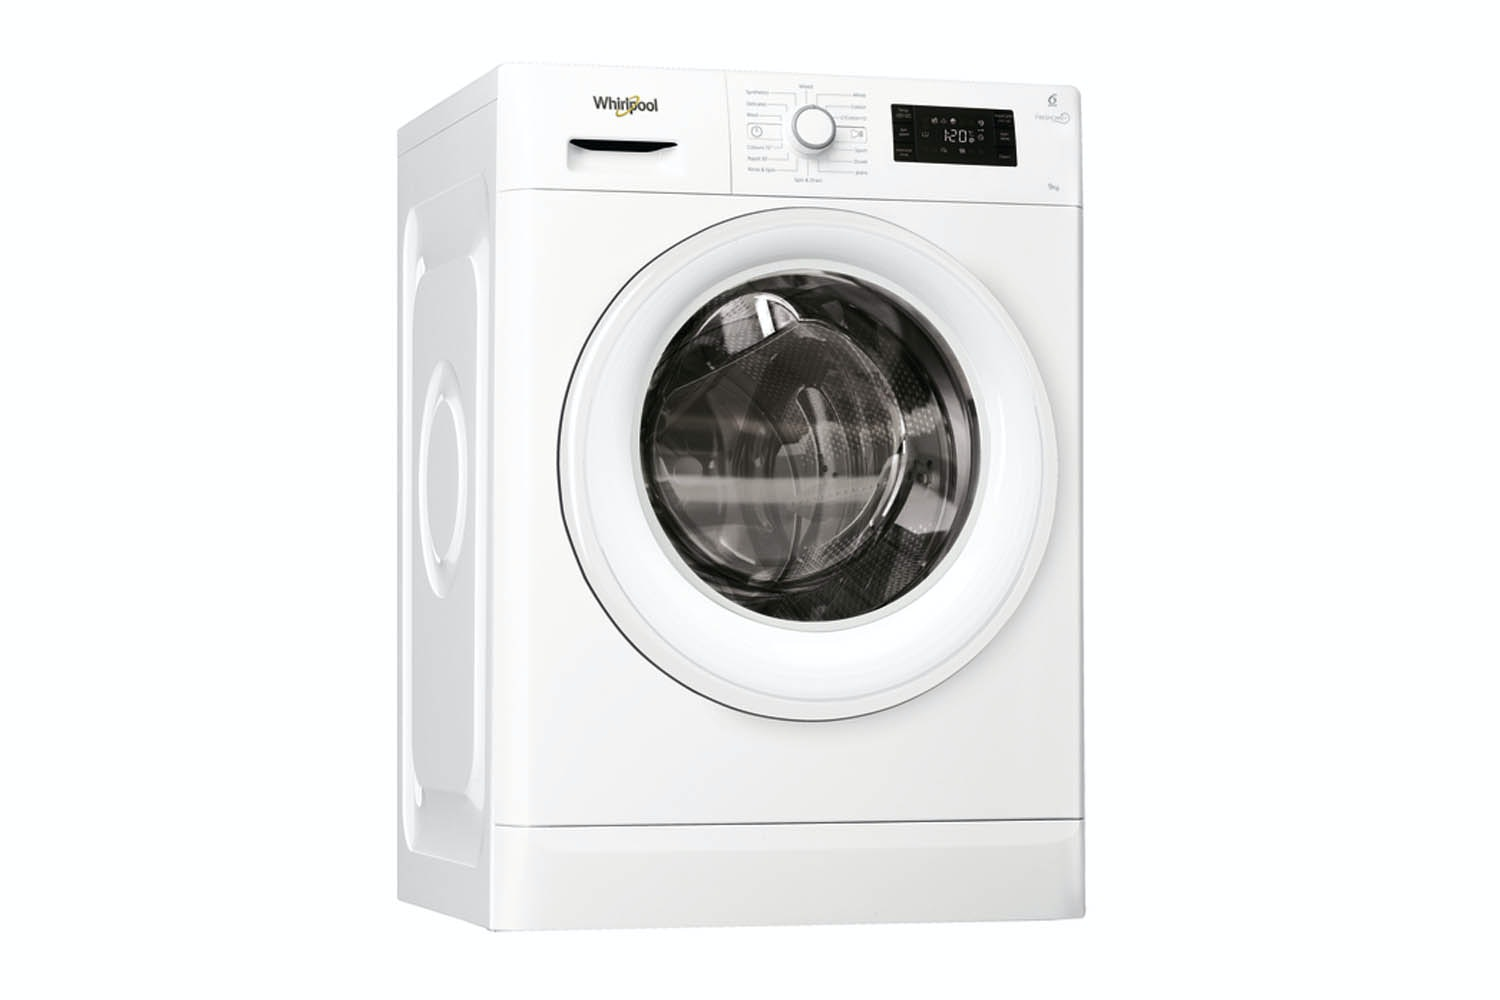 Whirlpool 9kg FreshCare Washing Machine | FWG91284WUK